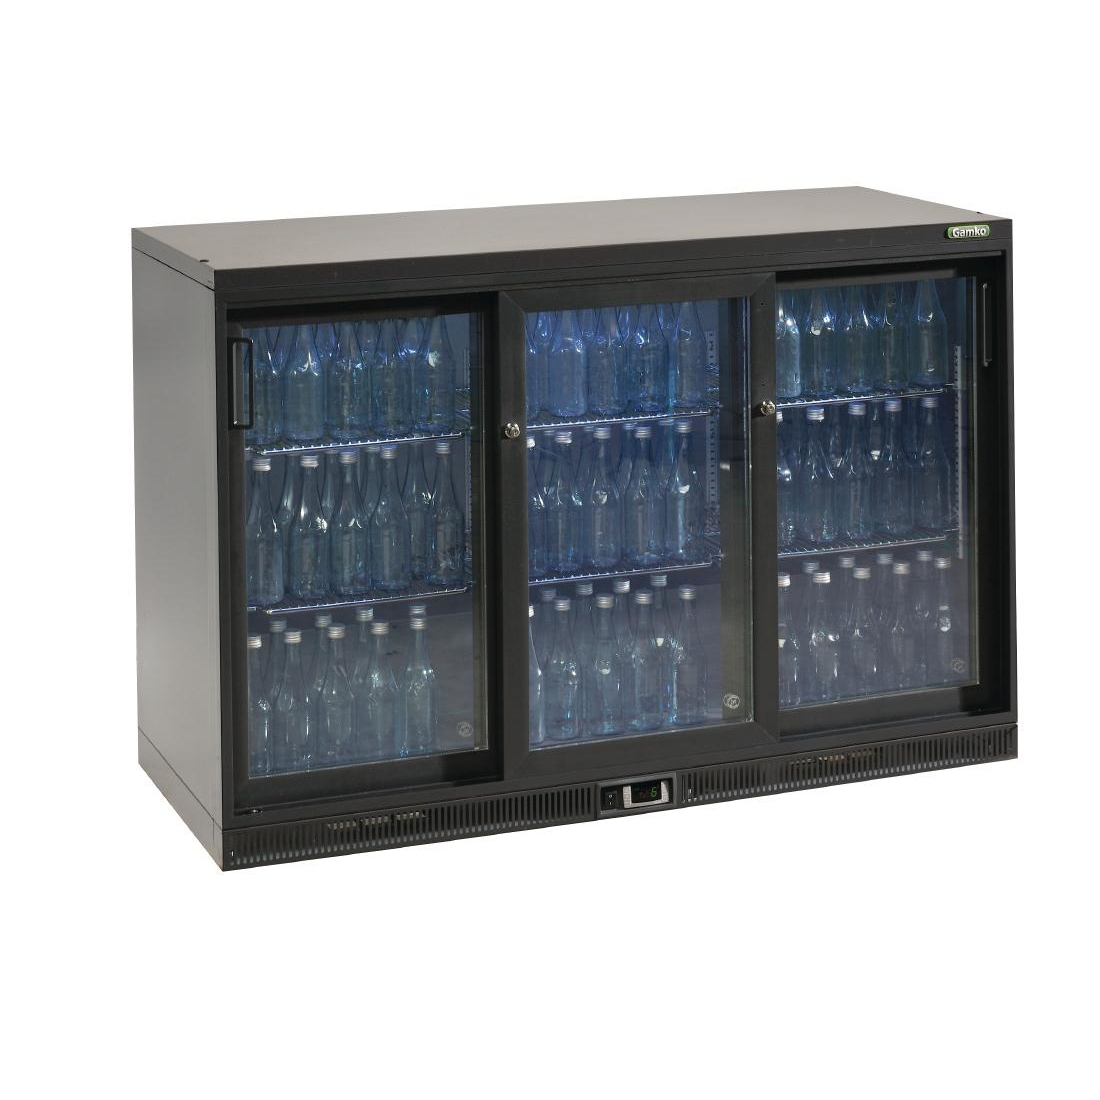 Gamko Bottle Cooler - Triple Sliding Door 315 Ltr